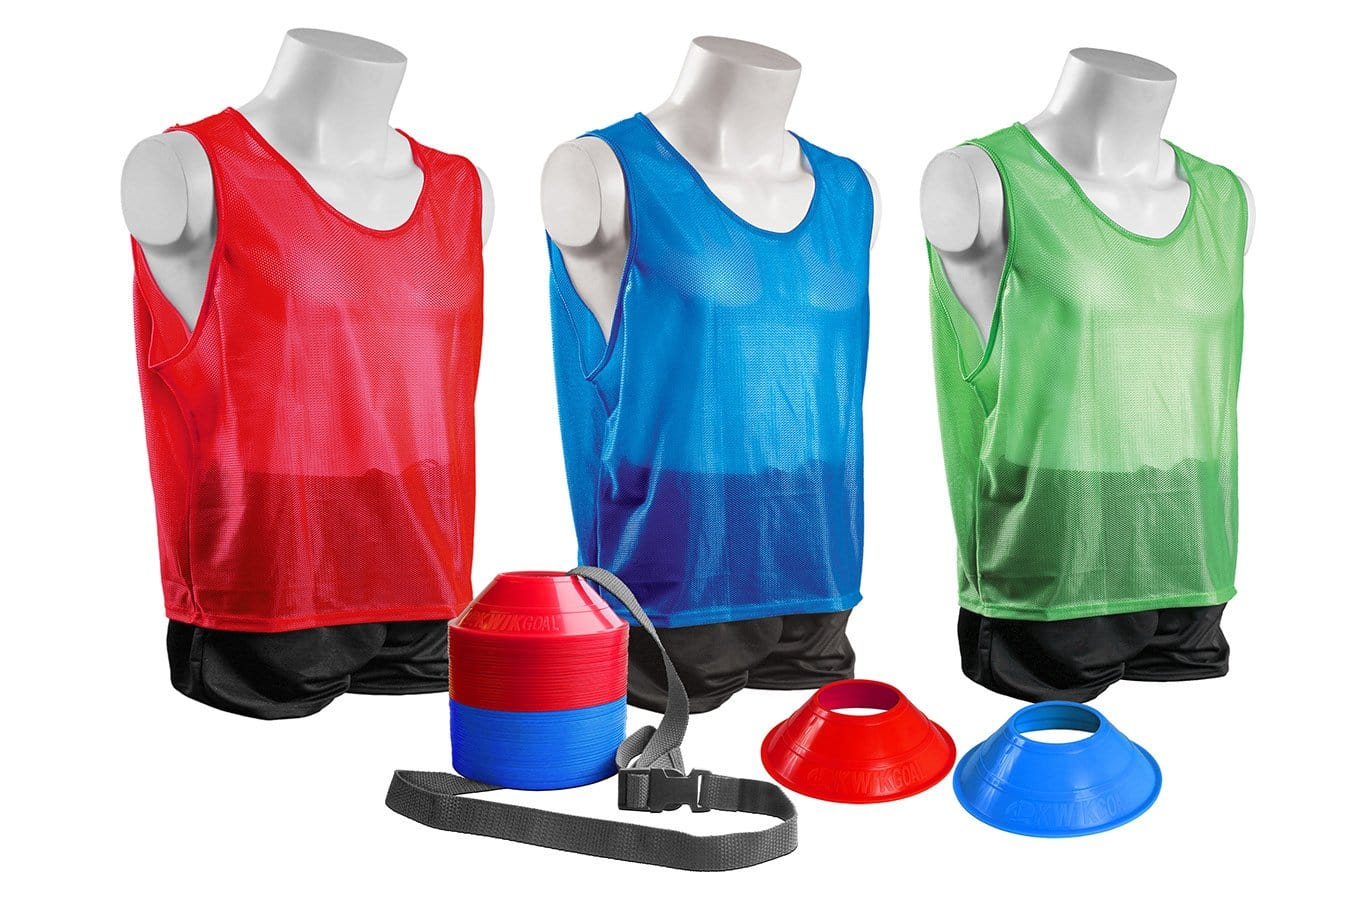 Sample of 1 Youth Red, blue & Green Vest and Red & Blue Disc Cones